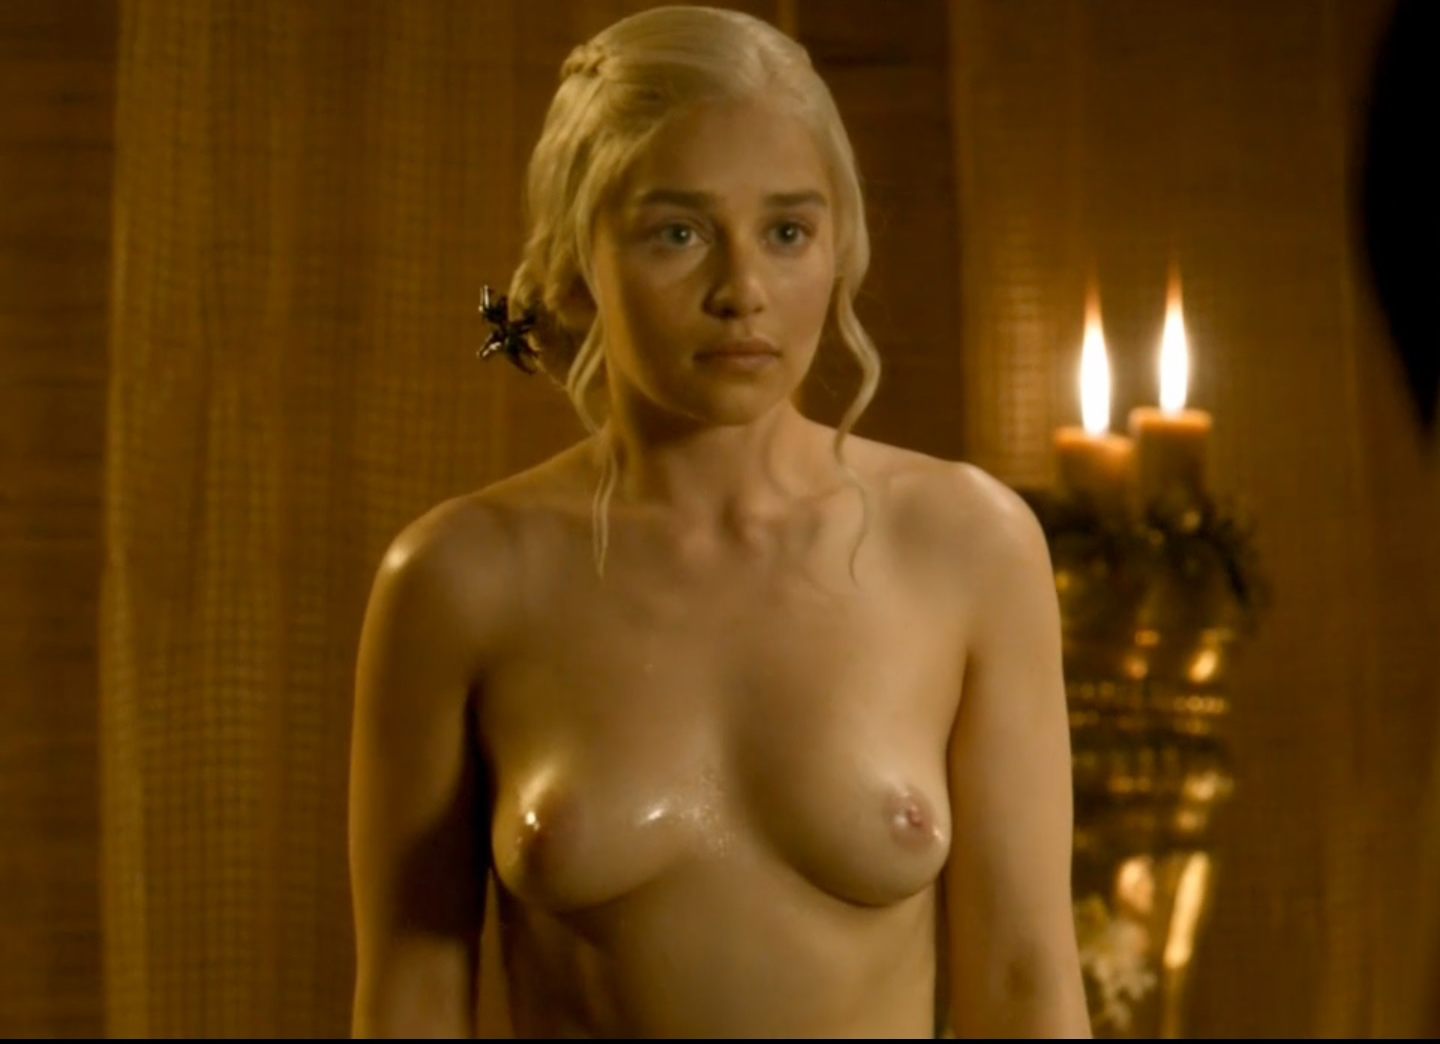 Tits Emilia Clarke naked (28 photos), Ass, Hot, Selfie, butt 2015